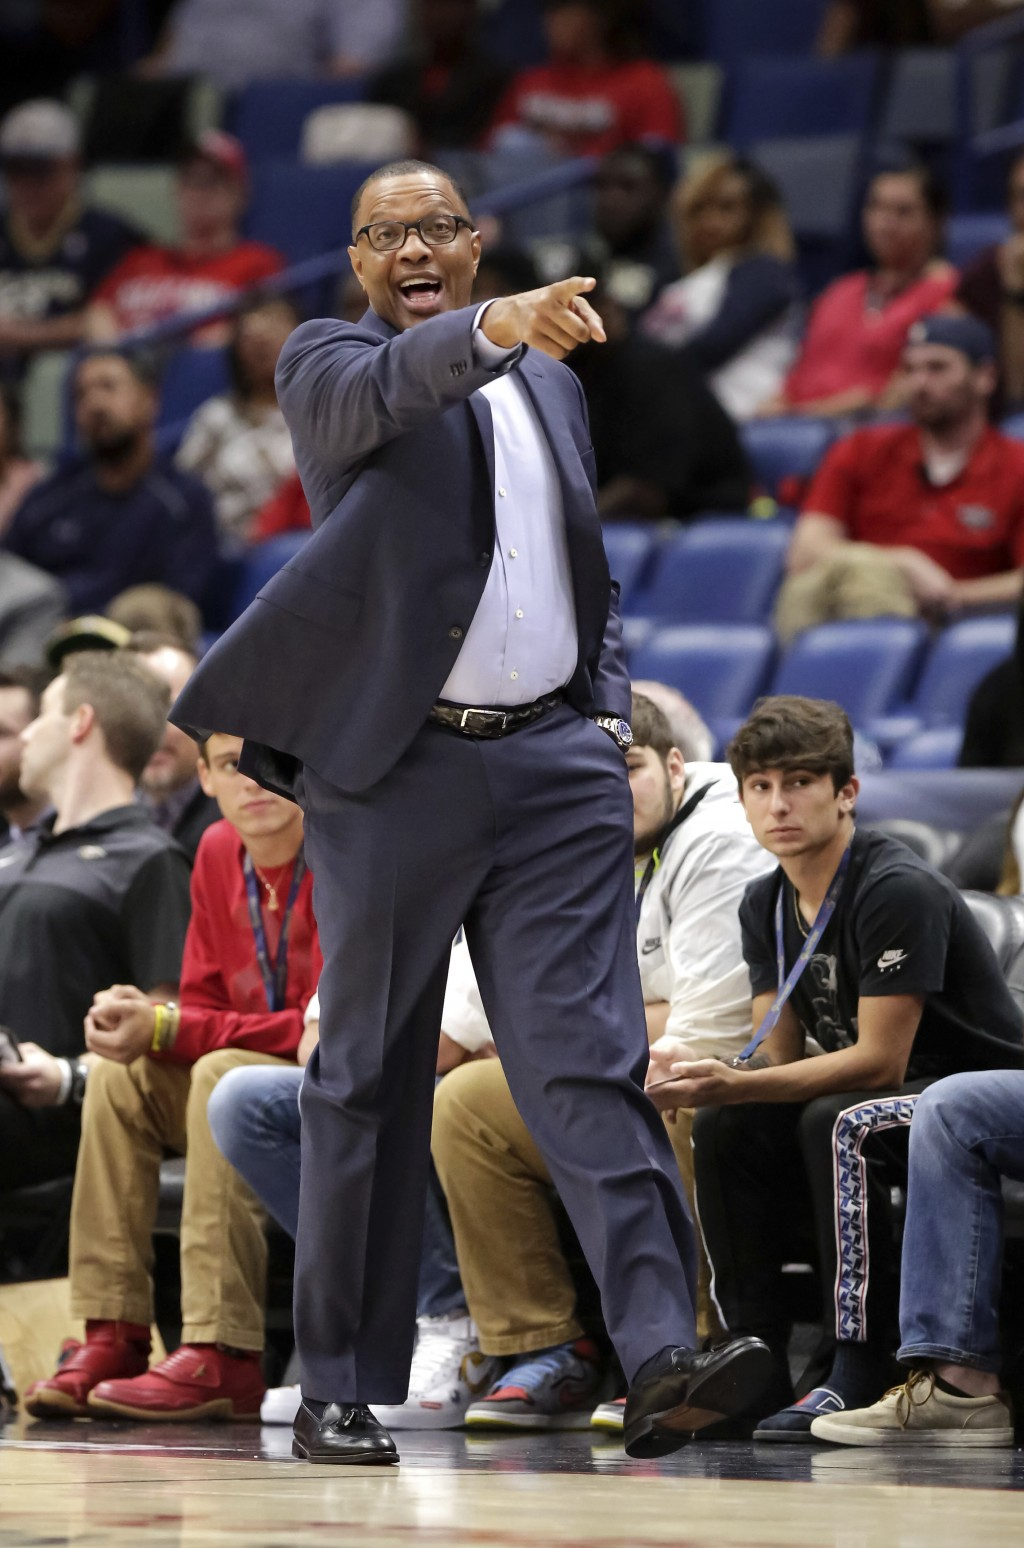 New Orleans Pelicans coach Alvin Gentry yells to his players during the first half of a preseason NBA basketball game against the Toronto Raptors in N